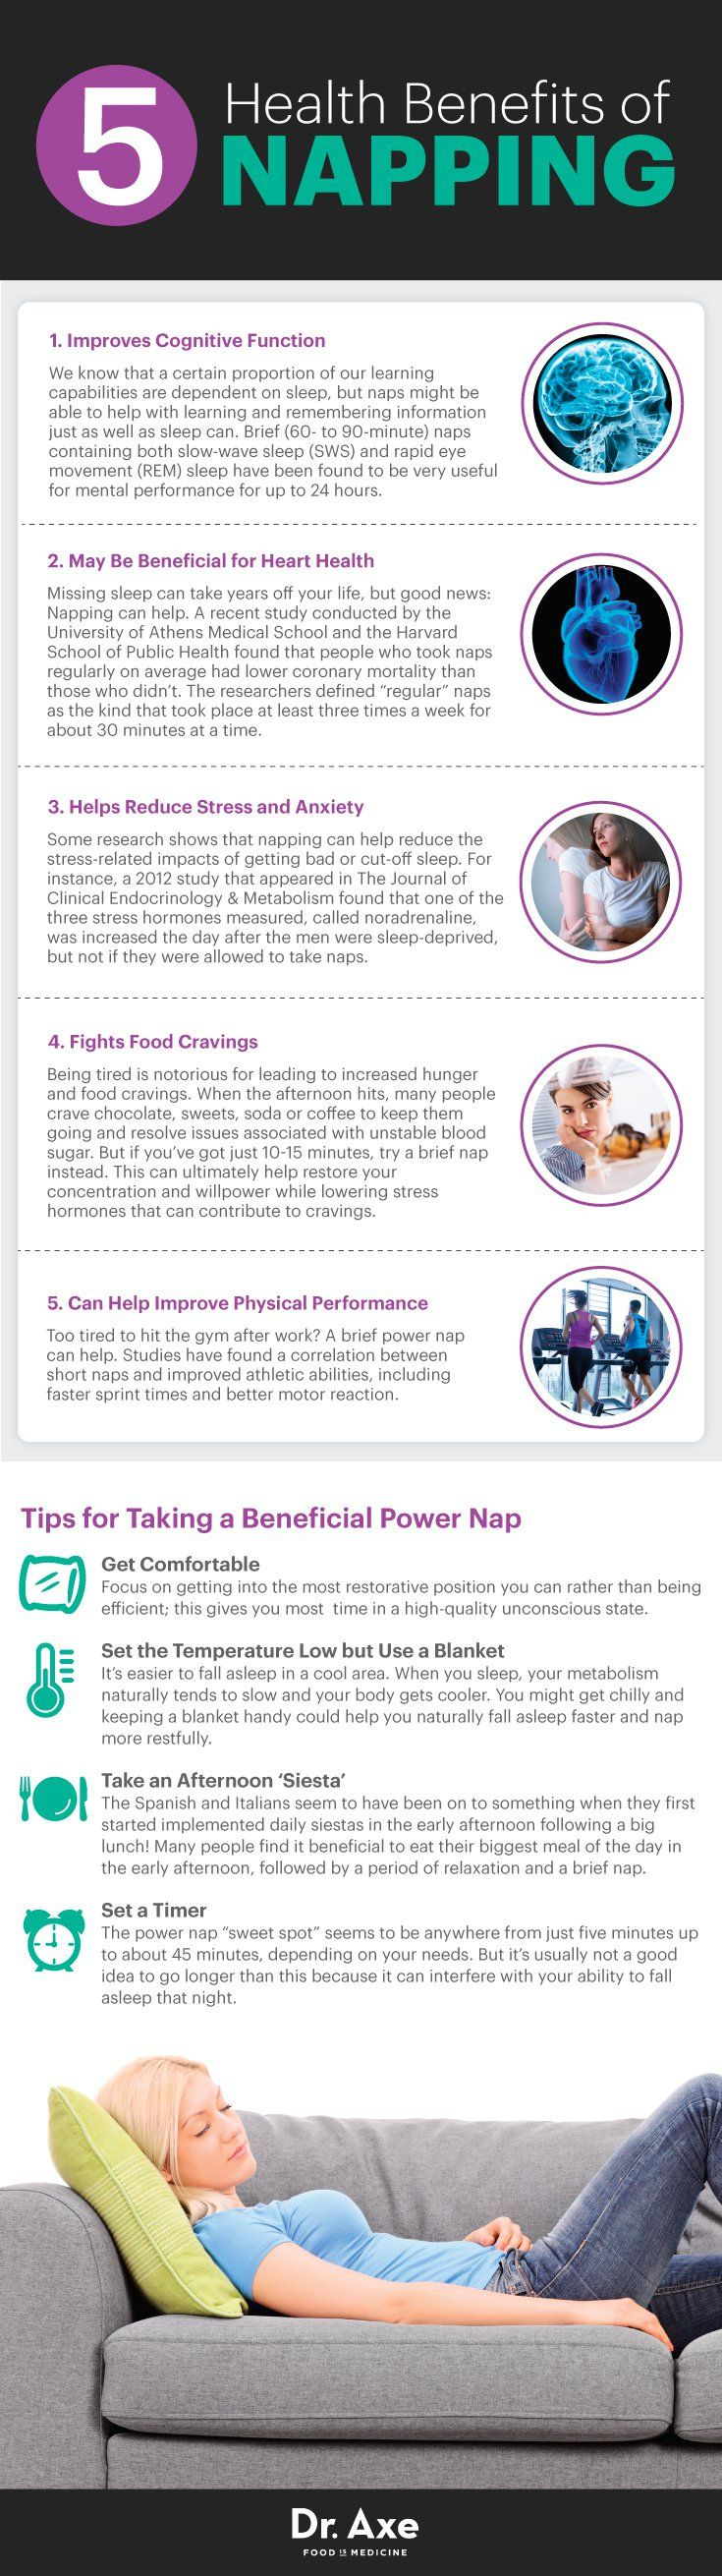 """The Science Behind a Power Nap I Our parents may have been on to something when they encouraged us to nap  even in adulthood, brief, regular napping seems to be good for you in a variety of different ways. While our fast-paced society may discourage breaks and taking time to slow down, research shows the opposite to be true: Any time you can rest and """"recharge your battery"""" is beneficial for both your body and mind. I   Dr. Axe"""